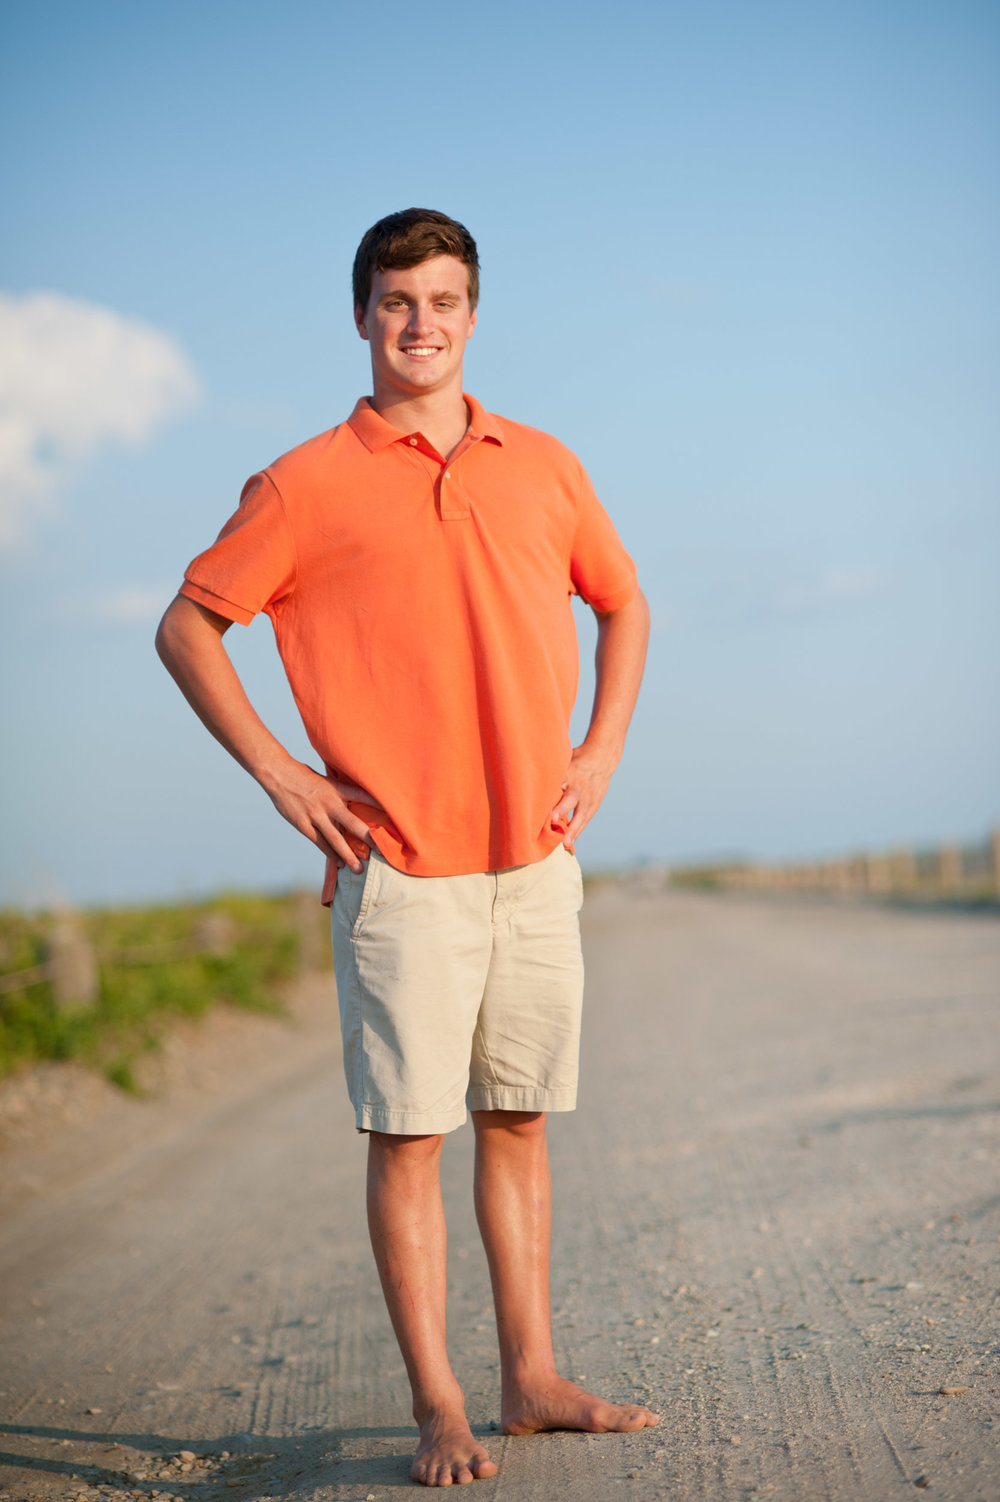 HsSr 02Sr_Portrait_Duxbury_Beach_Boy_High School-Edit-2.jpg